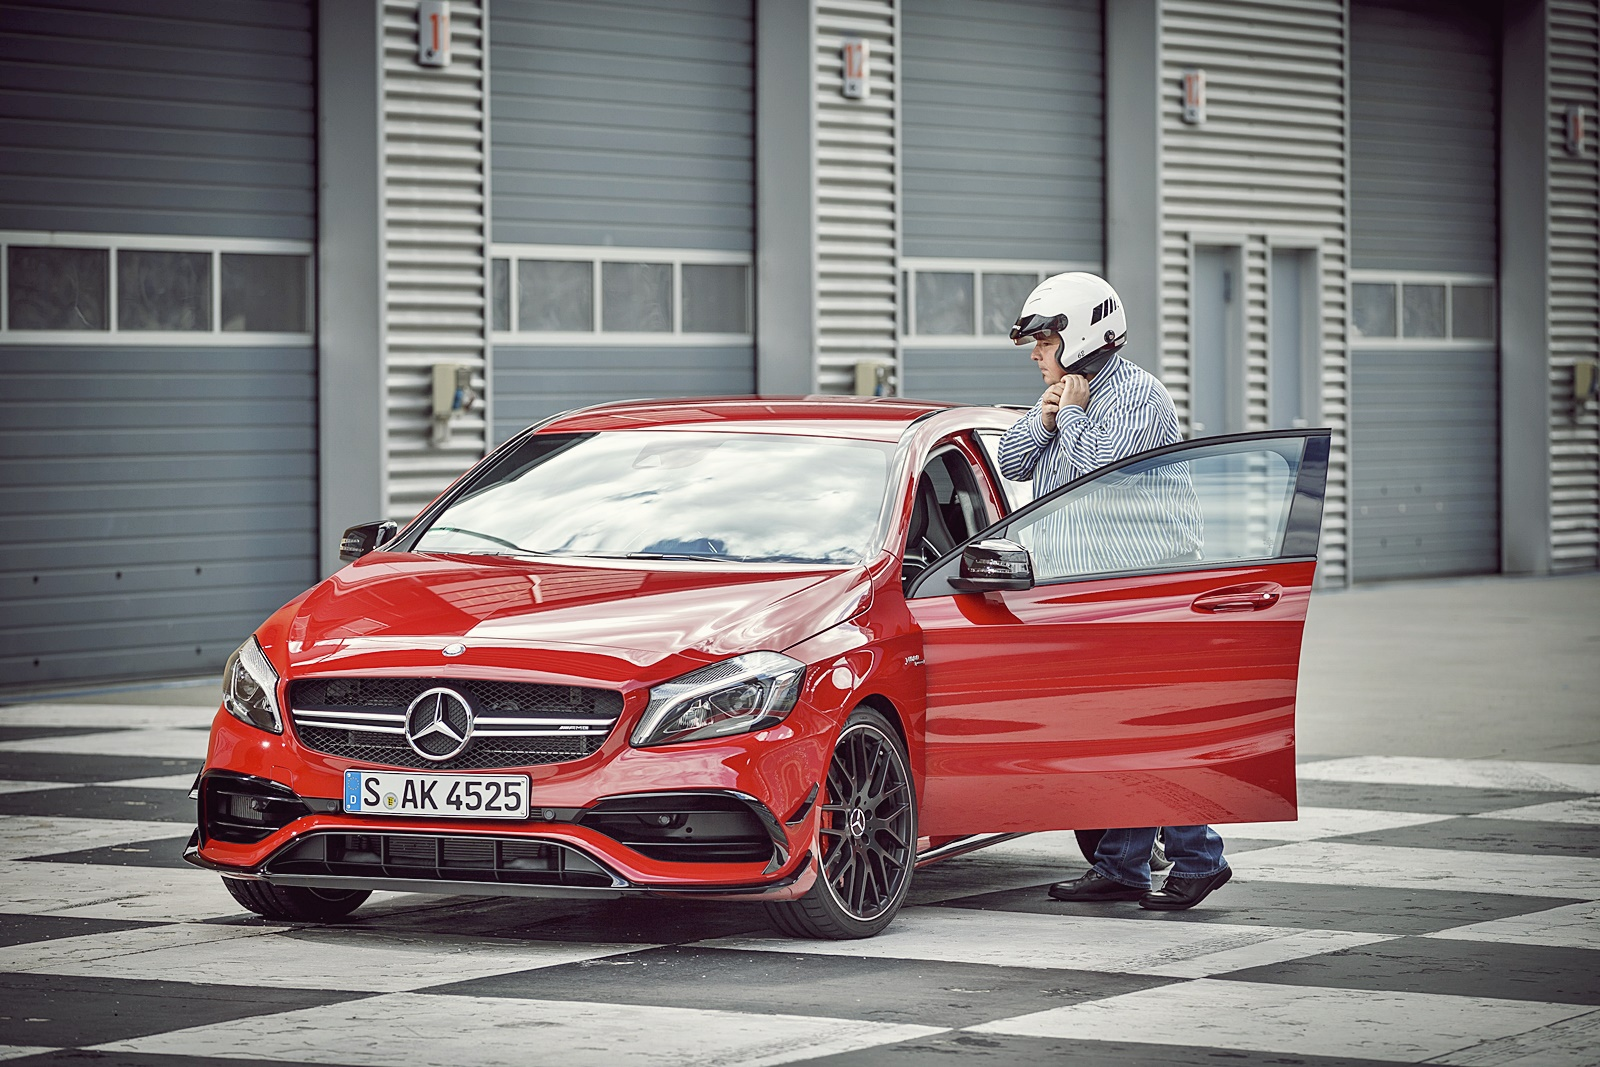 erster test 036 mercedes-amg a45 lausitzring